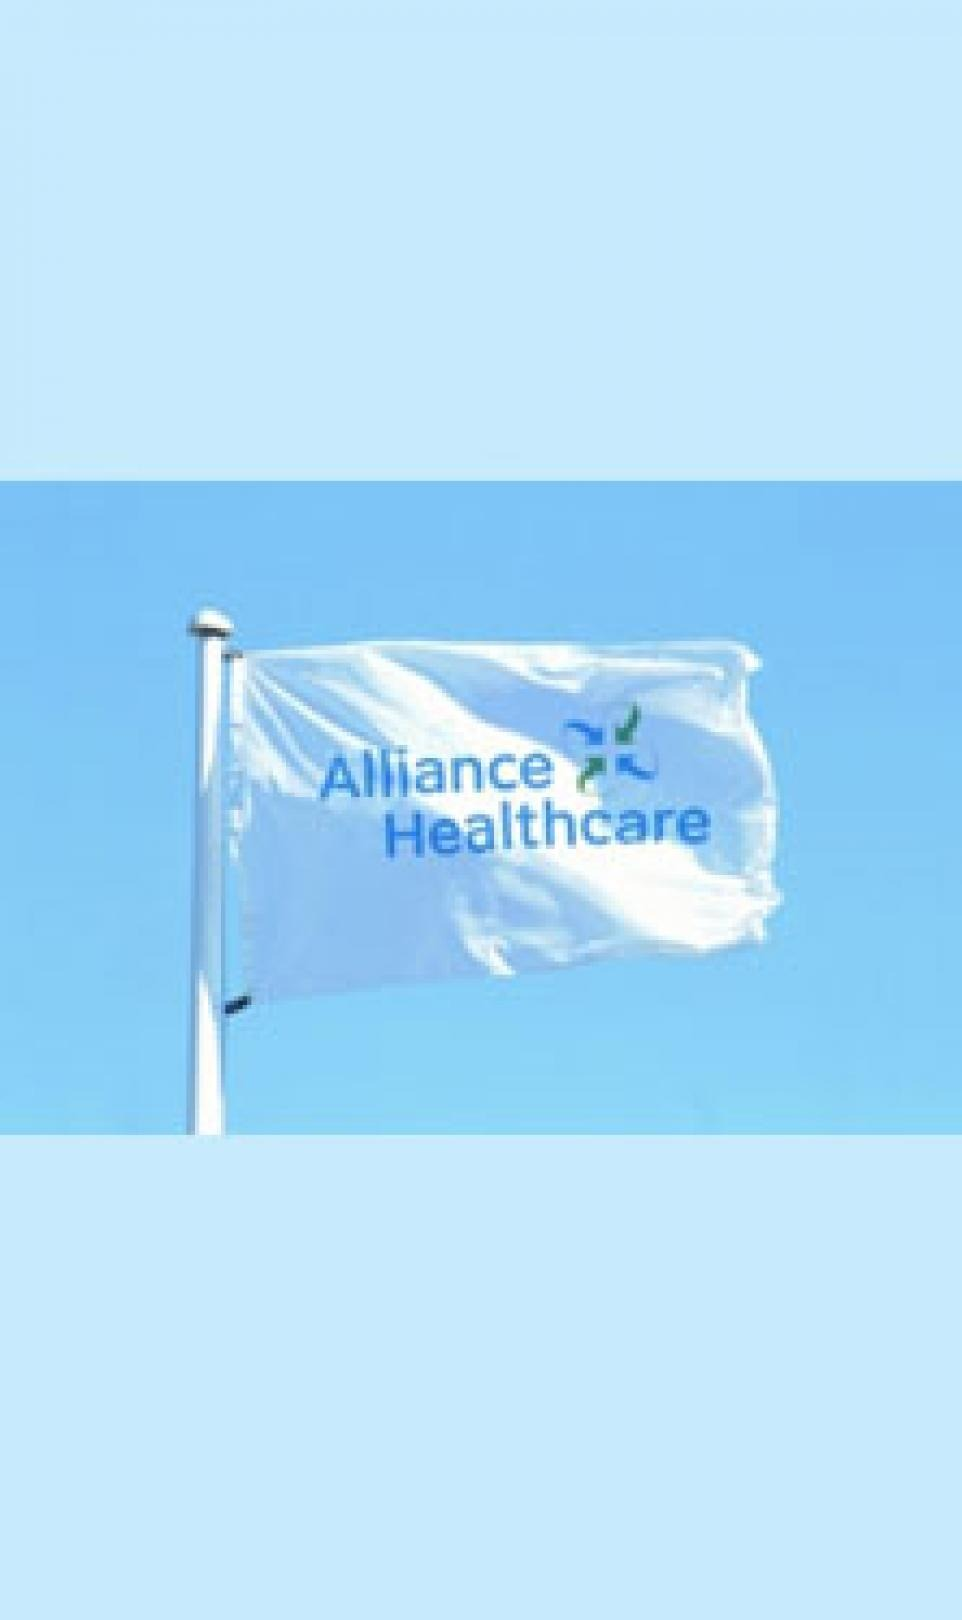 A white flag, blowing in the wind, featuring the blue and green Alliance Healthcare logo